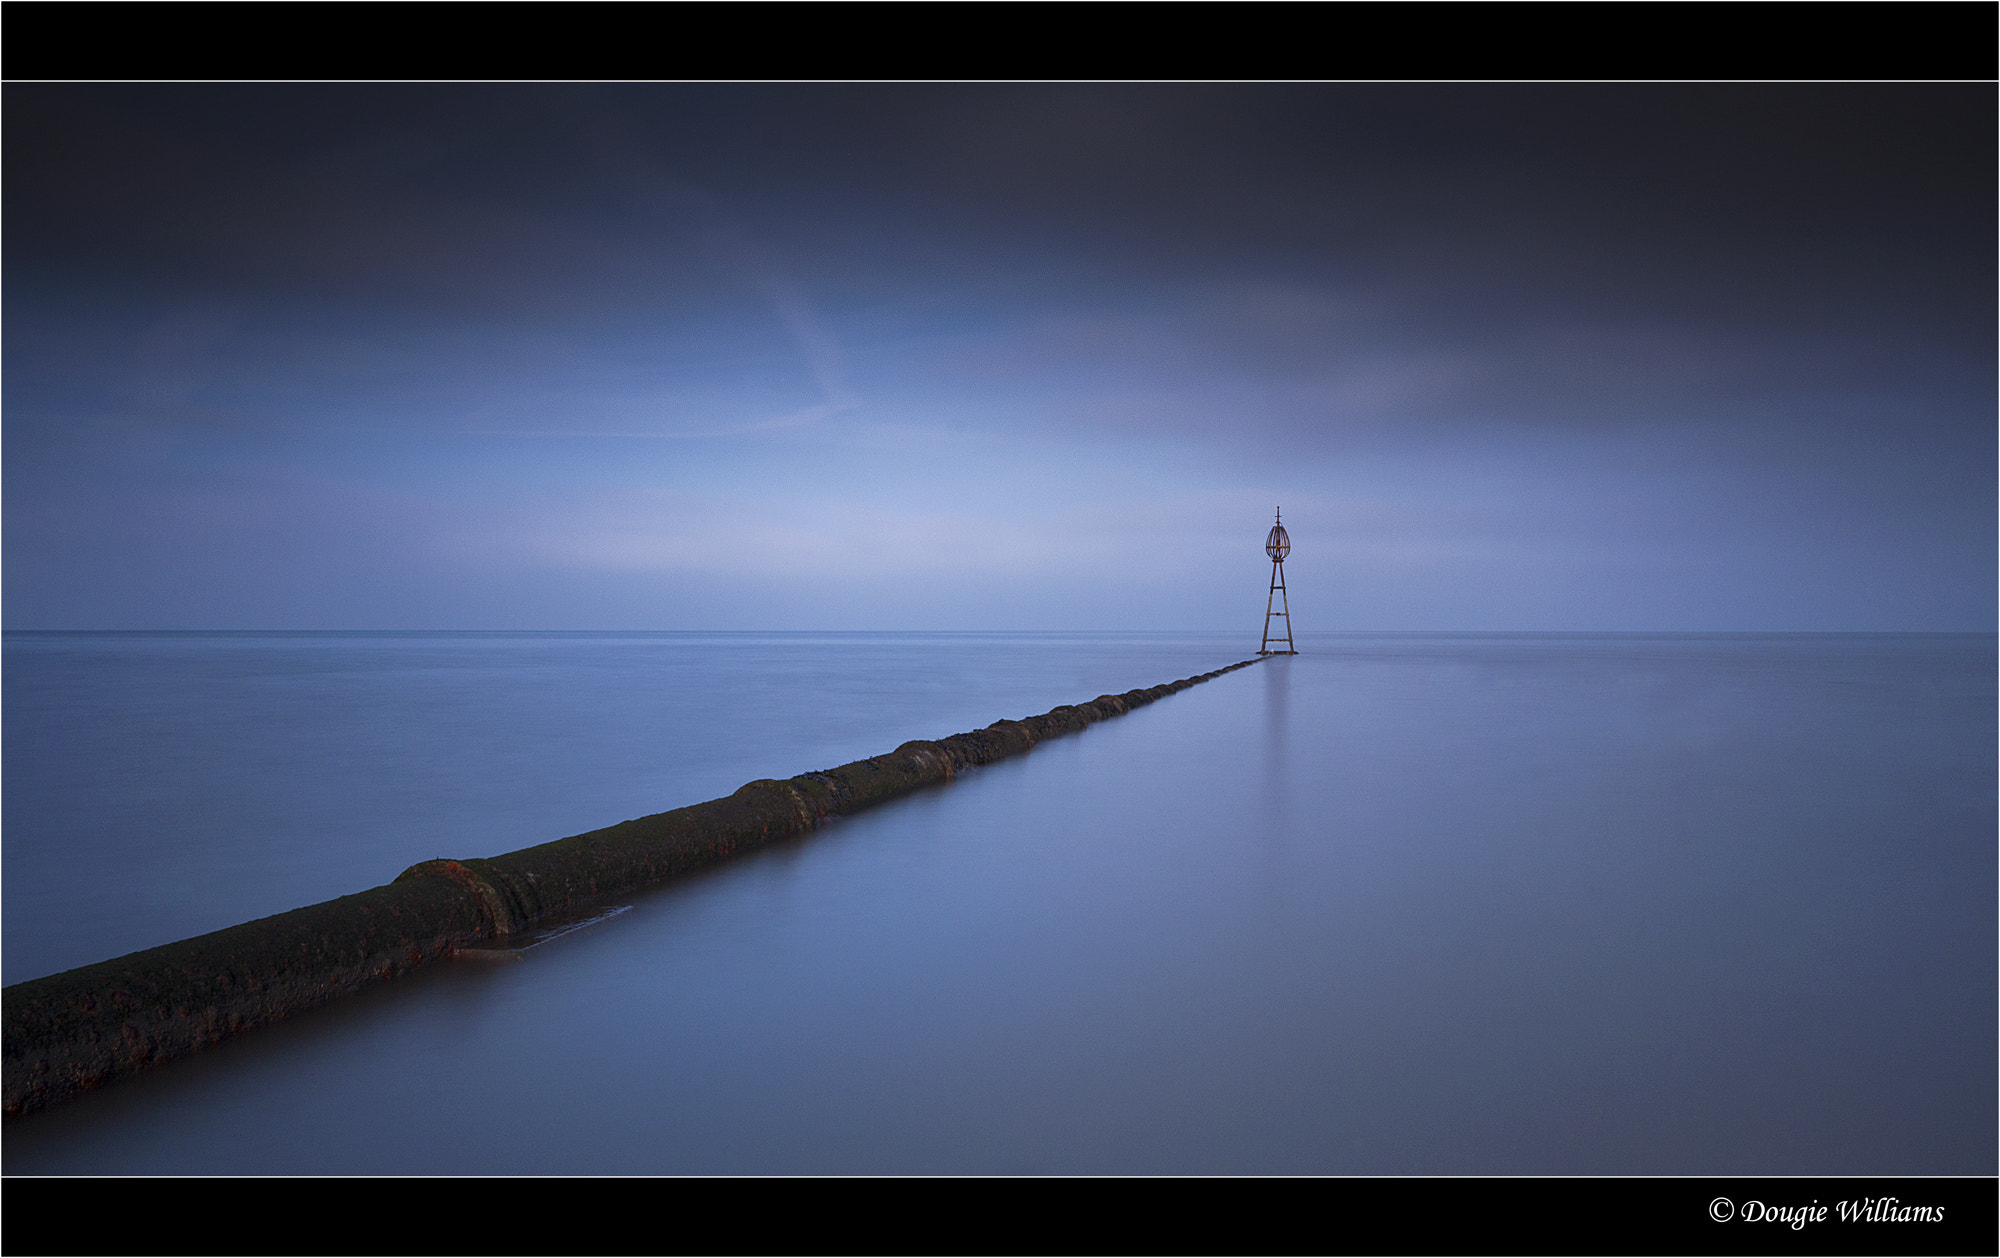 Photograph Joppa Pipe in Blue by Dougie Williams on 500px